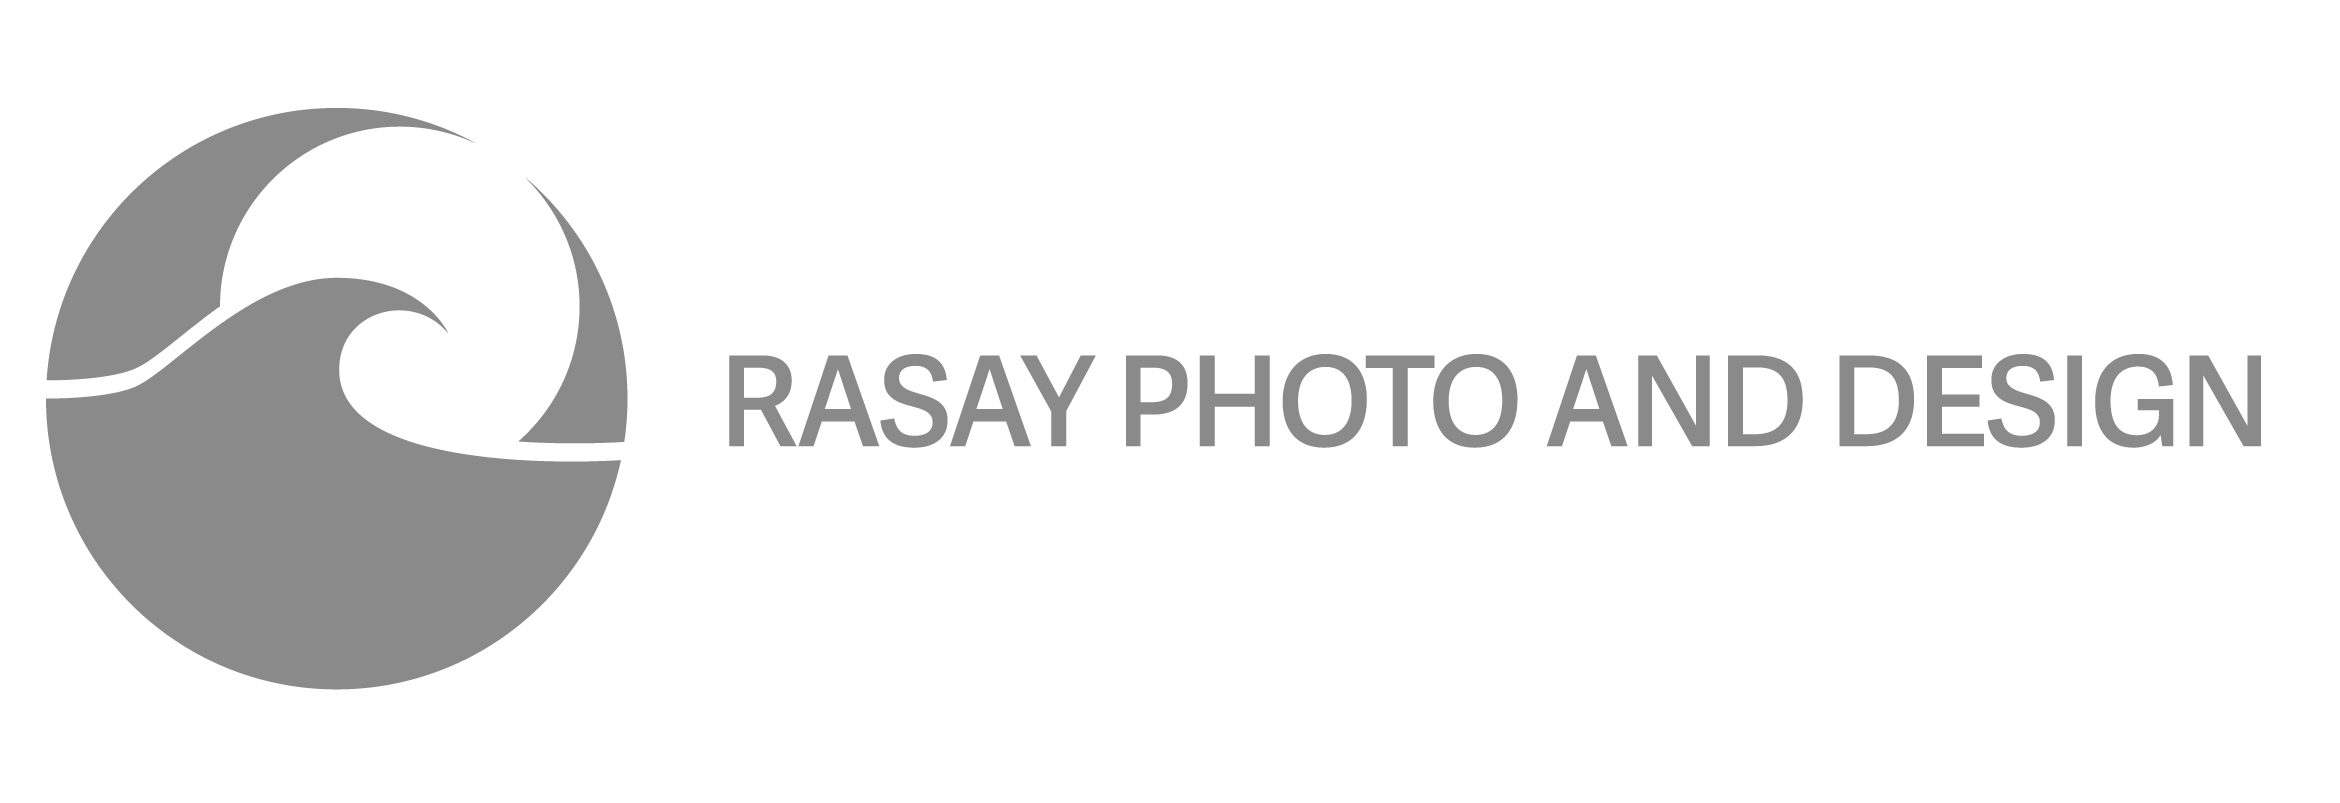 Rasay Photo and Design